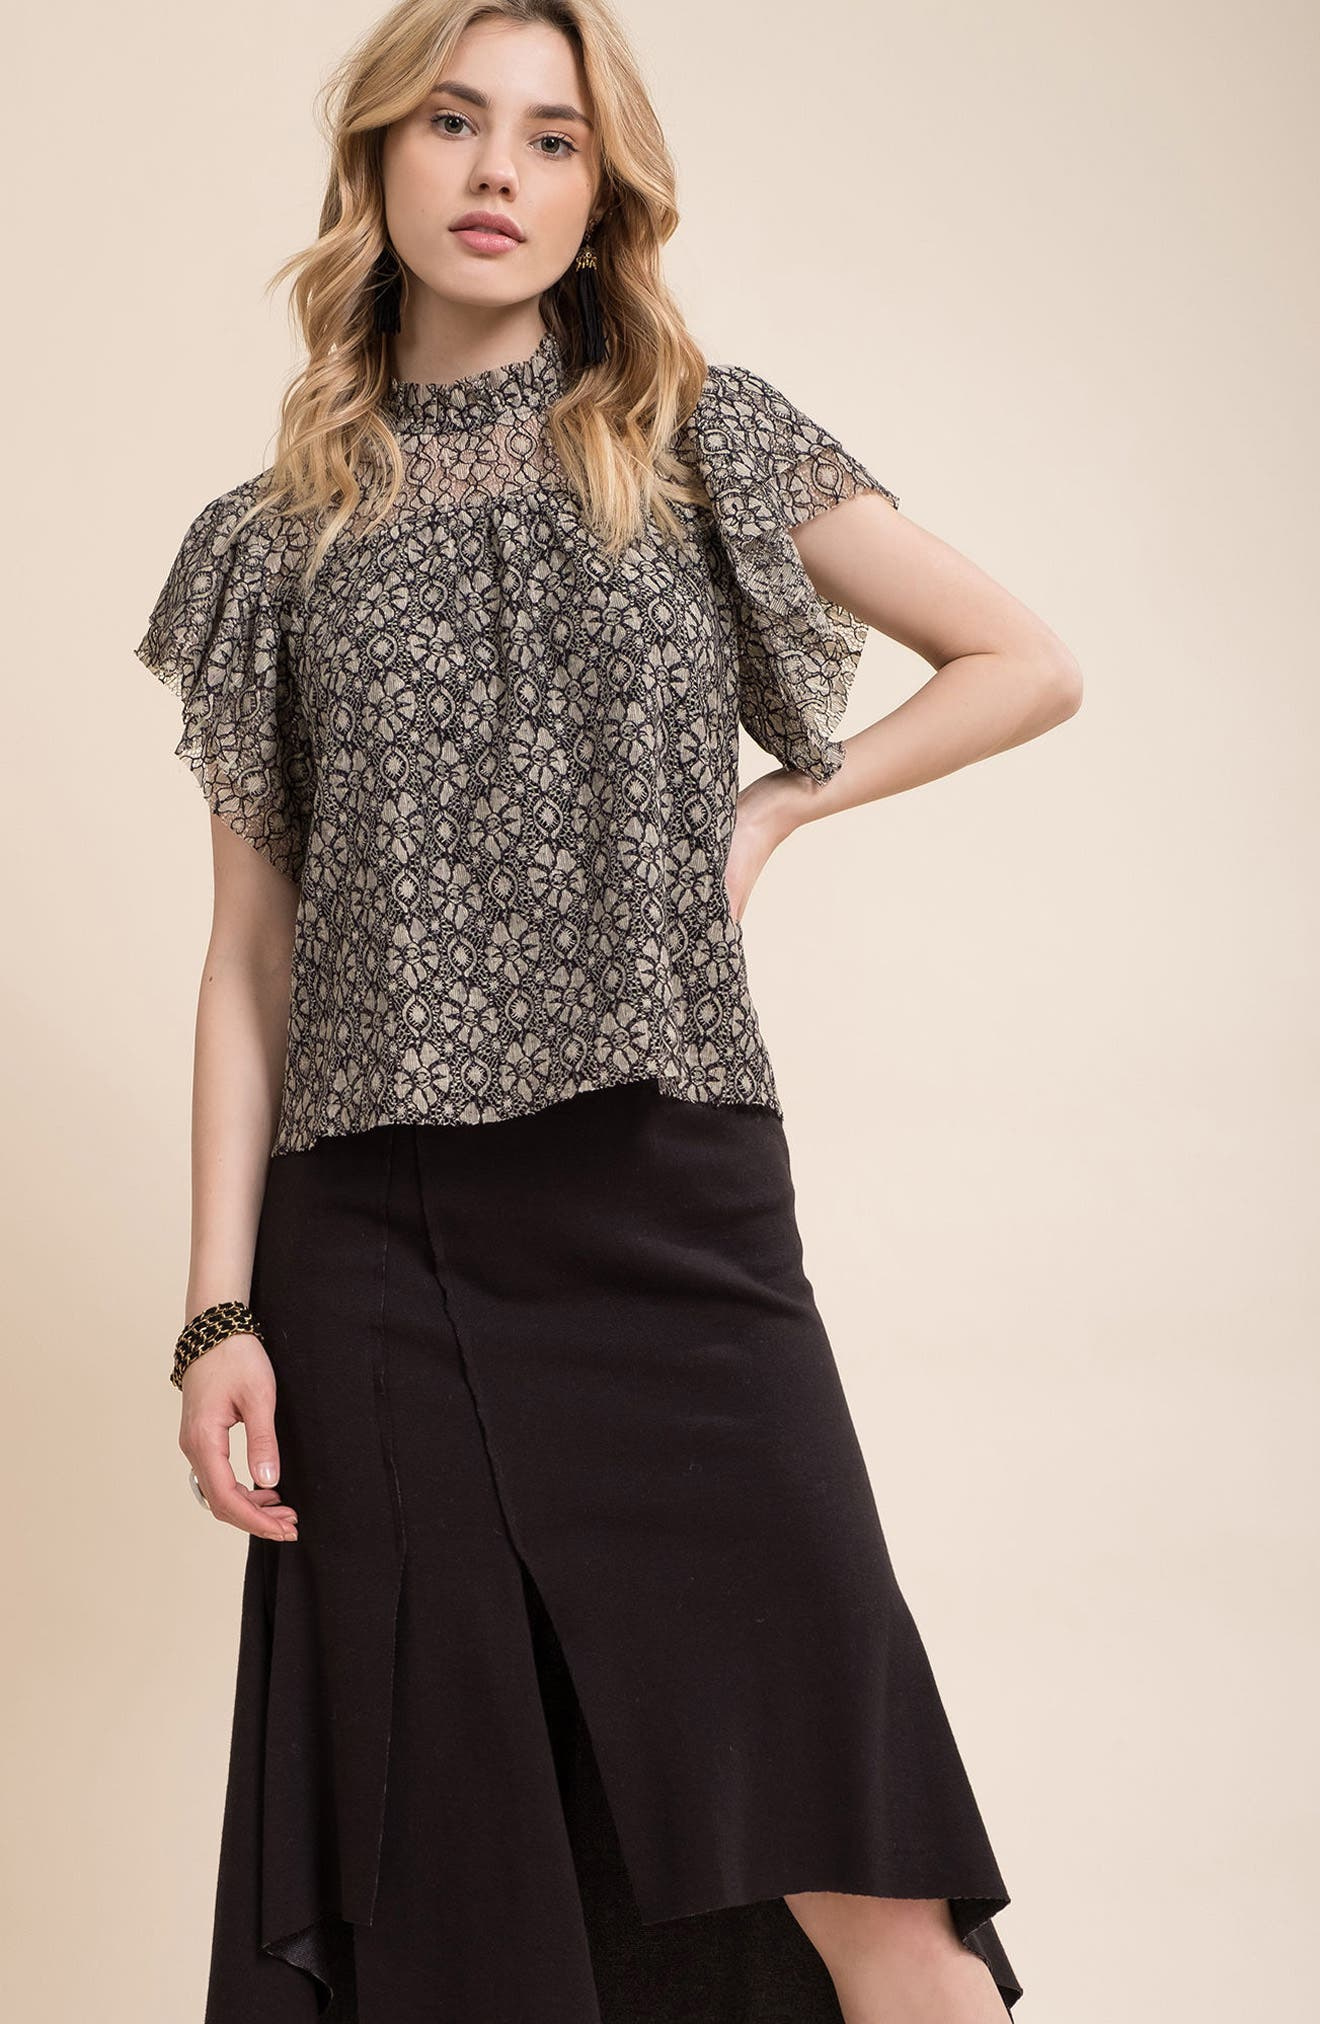 Ruffle Lace Top,                             Alternate thumbnail 7, color,                             Taupe/ Black